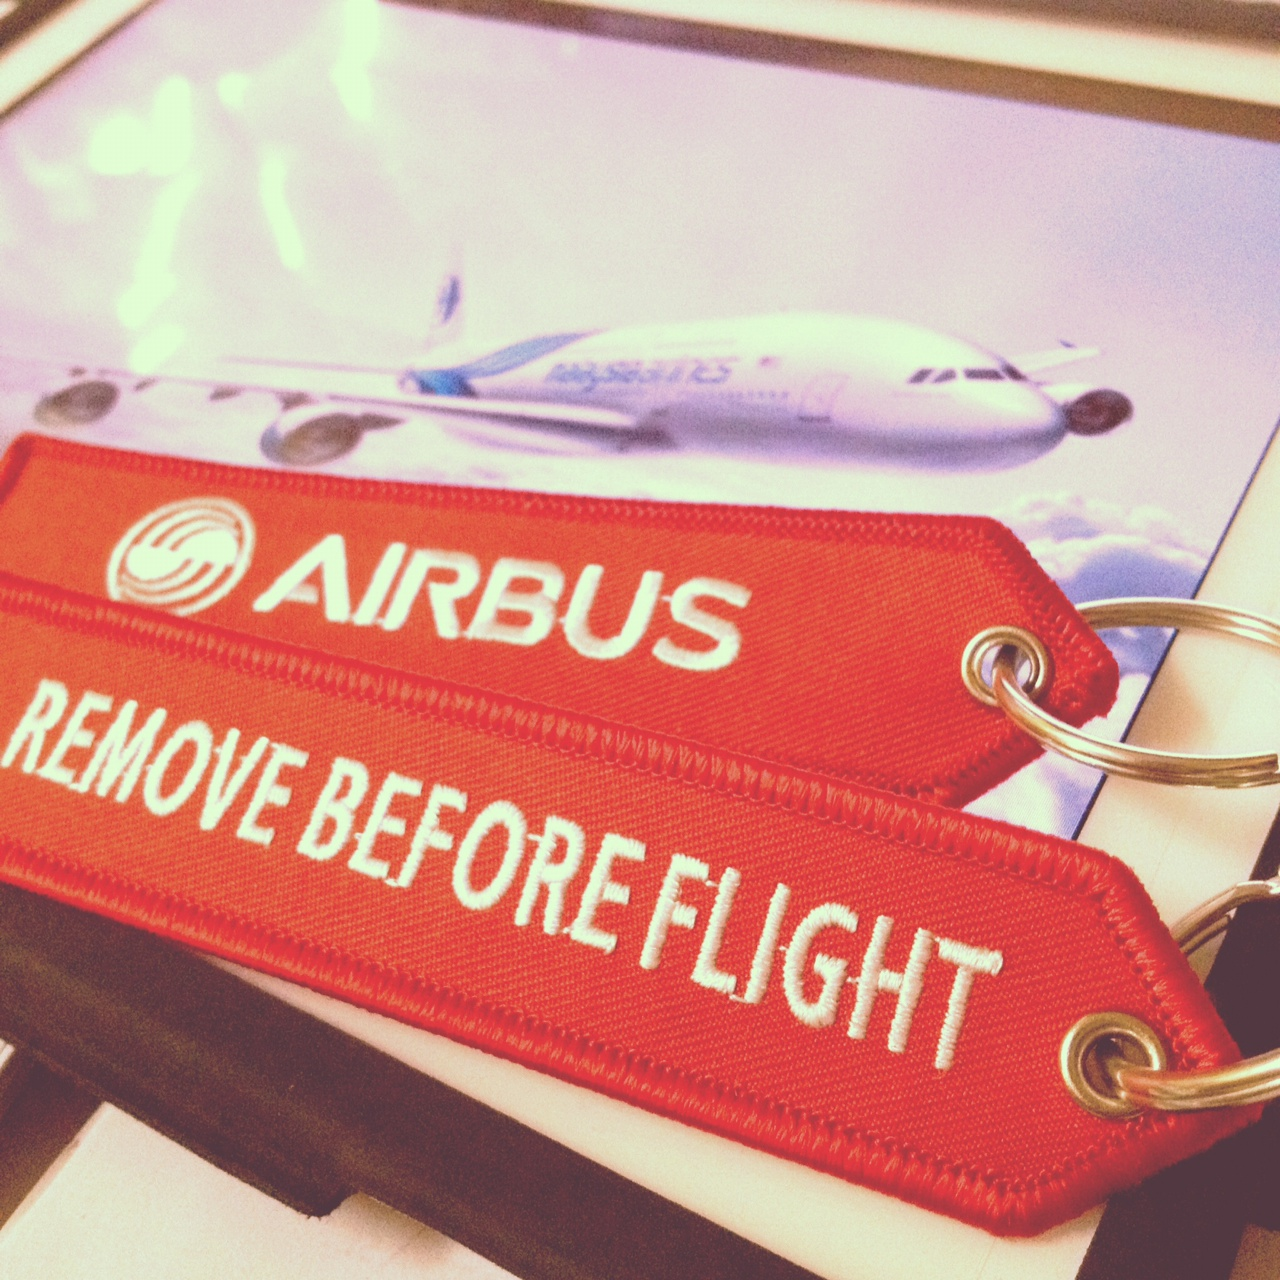 remove before flight airbus